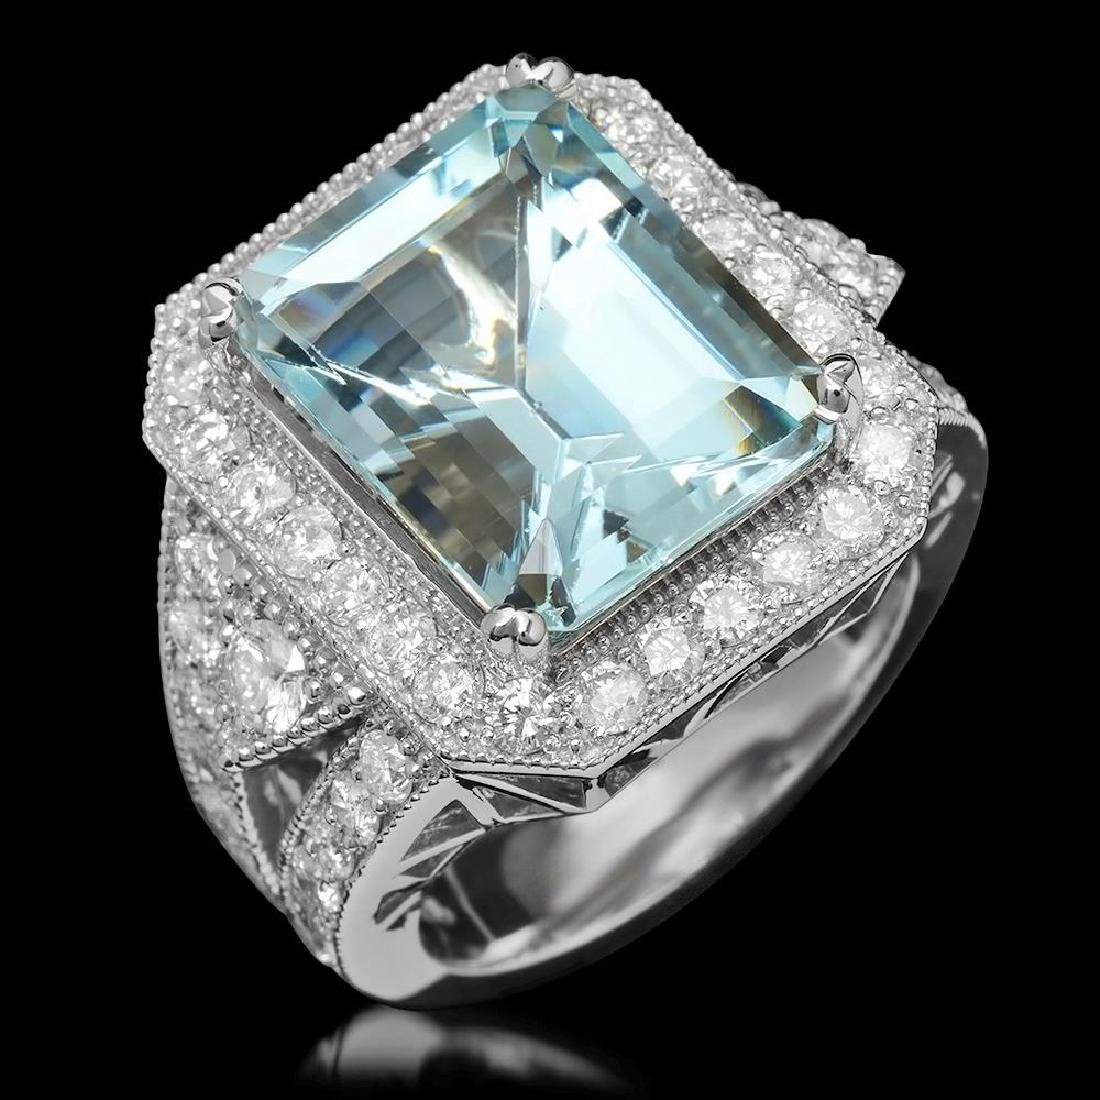 14K Gold 9.55ct Aquamarine & 2.10ct Diamond Ring